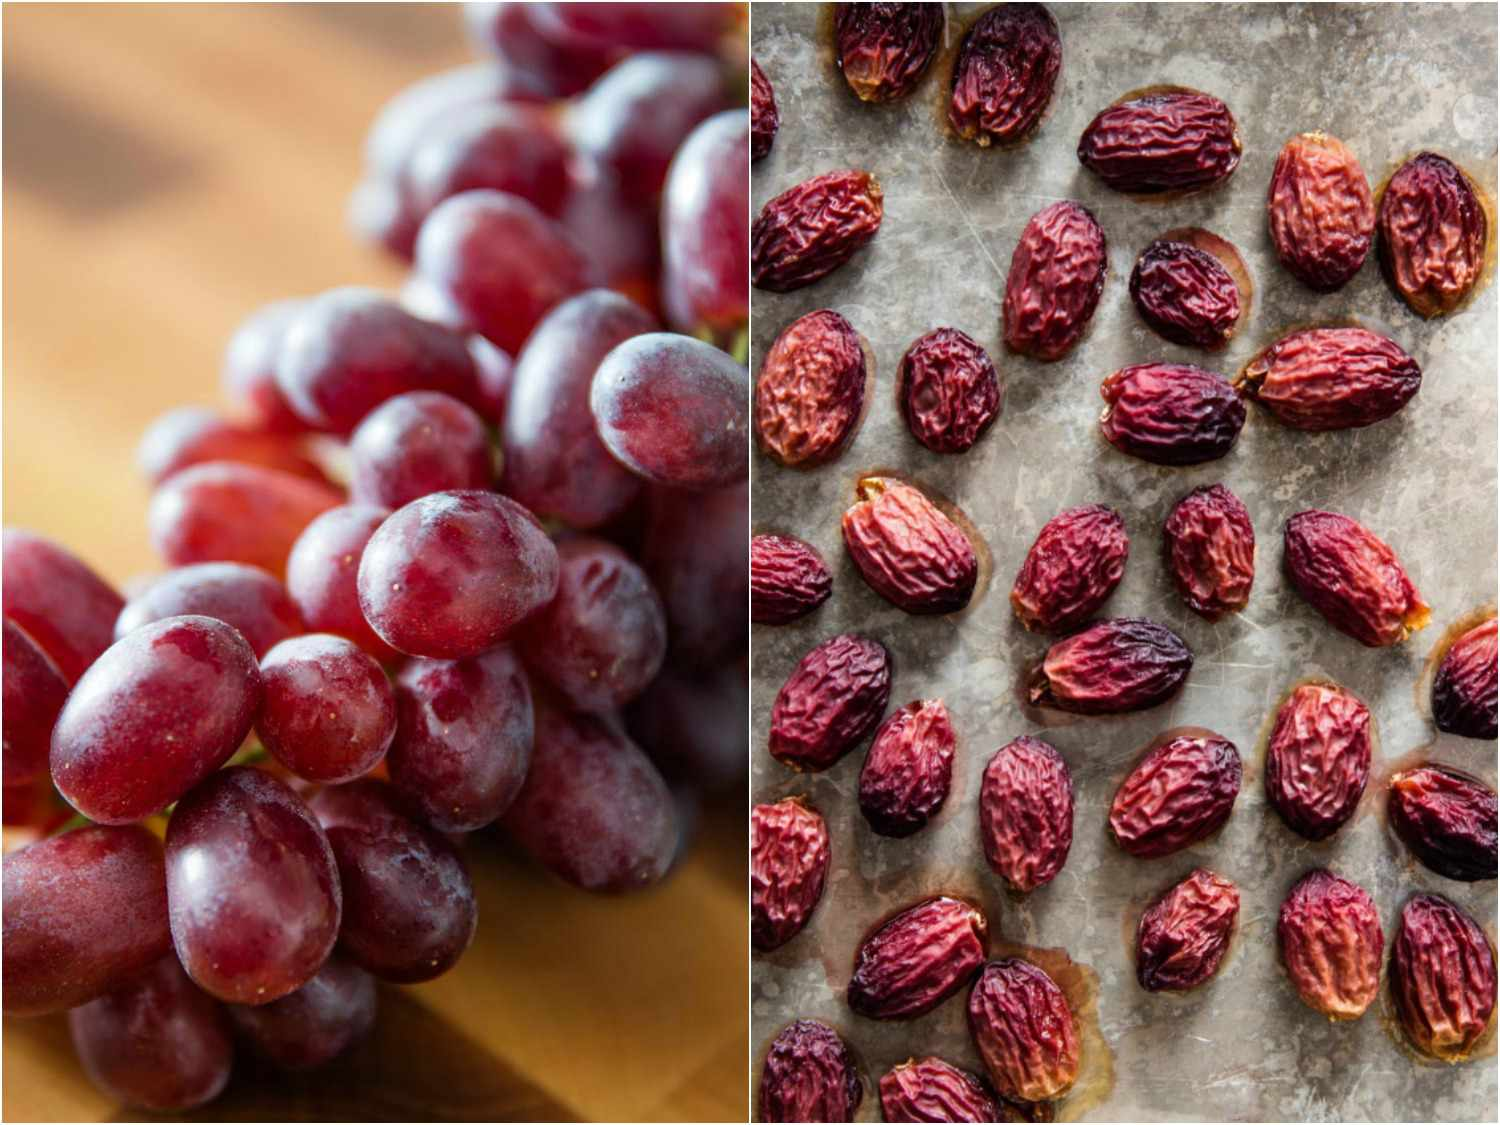 20170109-oven-roasted-grapes-purple-vicky-wasik-1.jpg